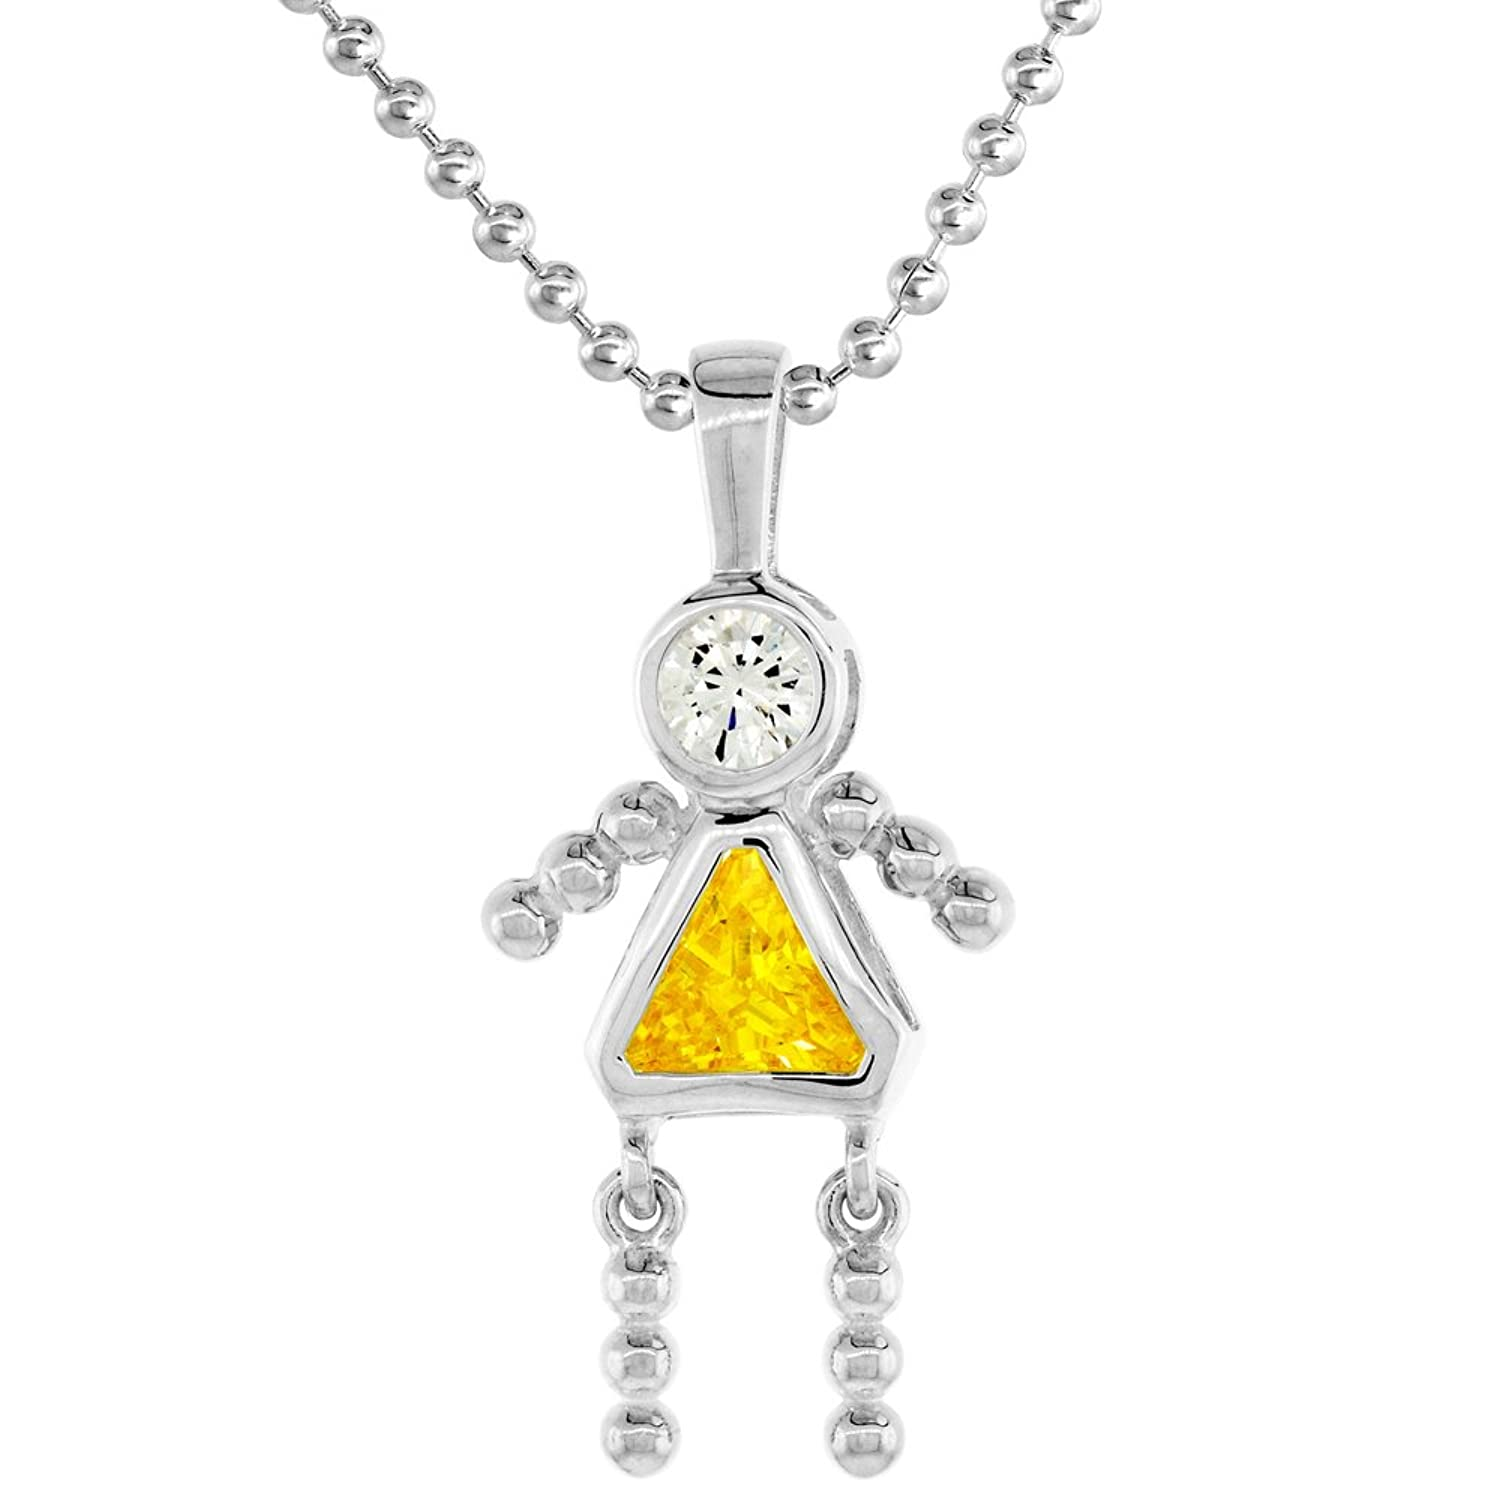 Sterling Silver Jewelry Pendants /& Charms Solid 12 mm 23 mm Antiqued Oil Derrick Pendant